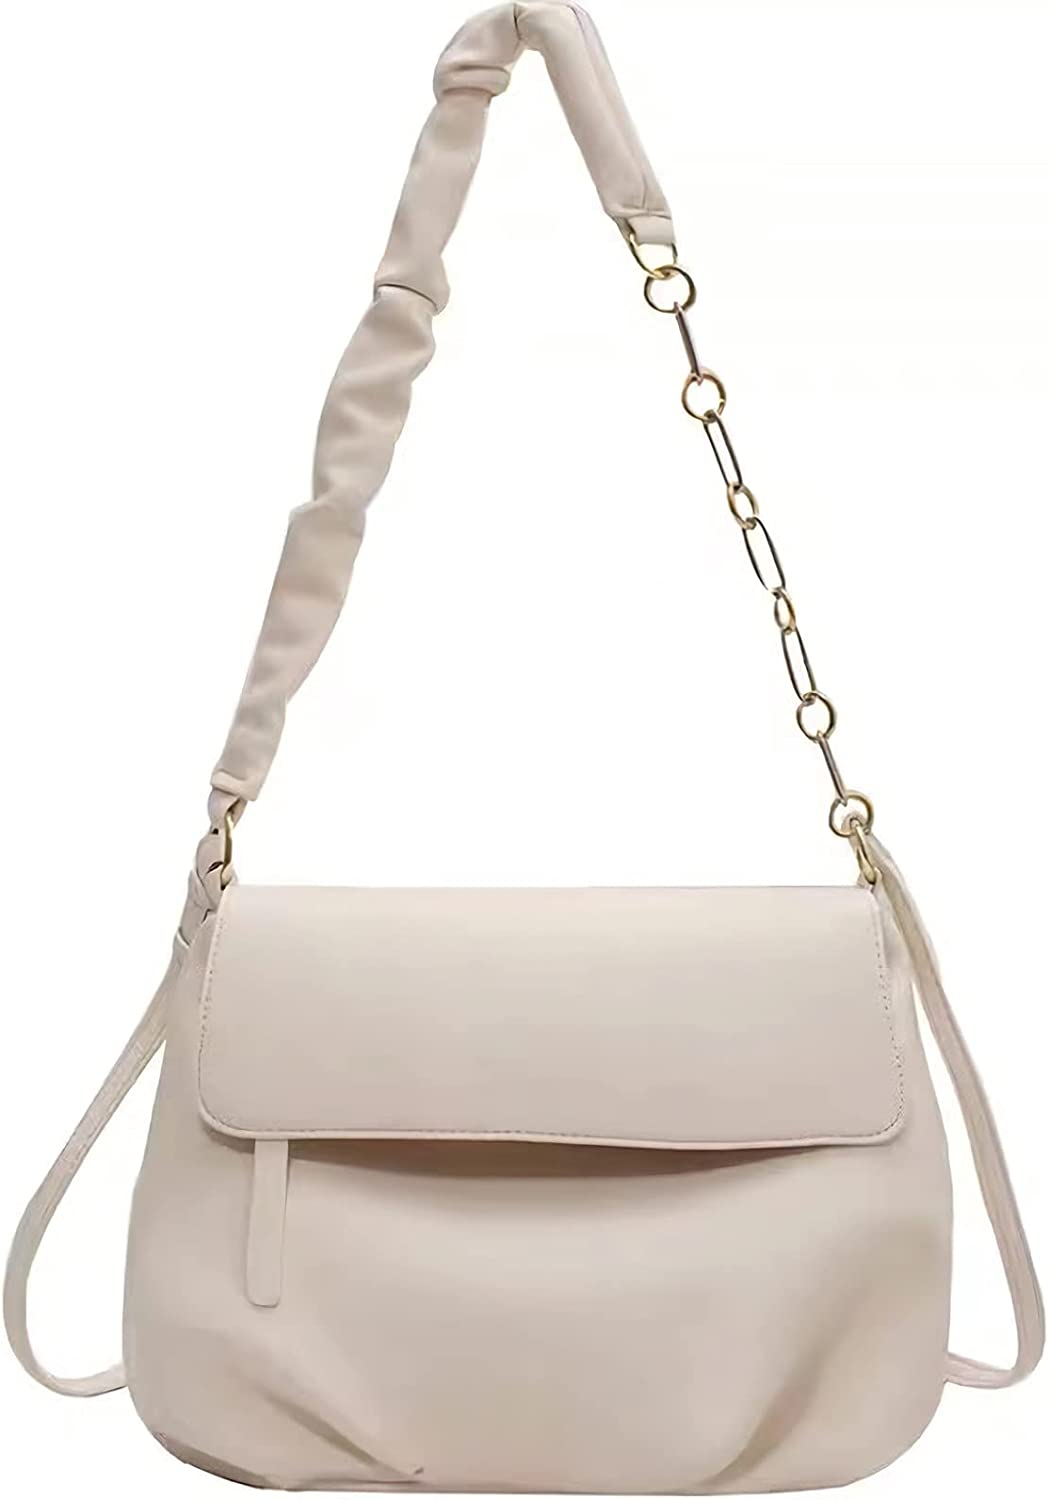 Double Strap Shoulder Bag for Women Crossbody Bag Soft Faux Leather Hobo Bags Tote Purse for Girls, Ideal Gift